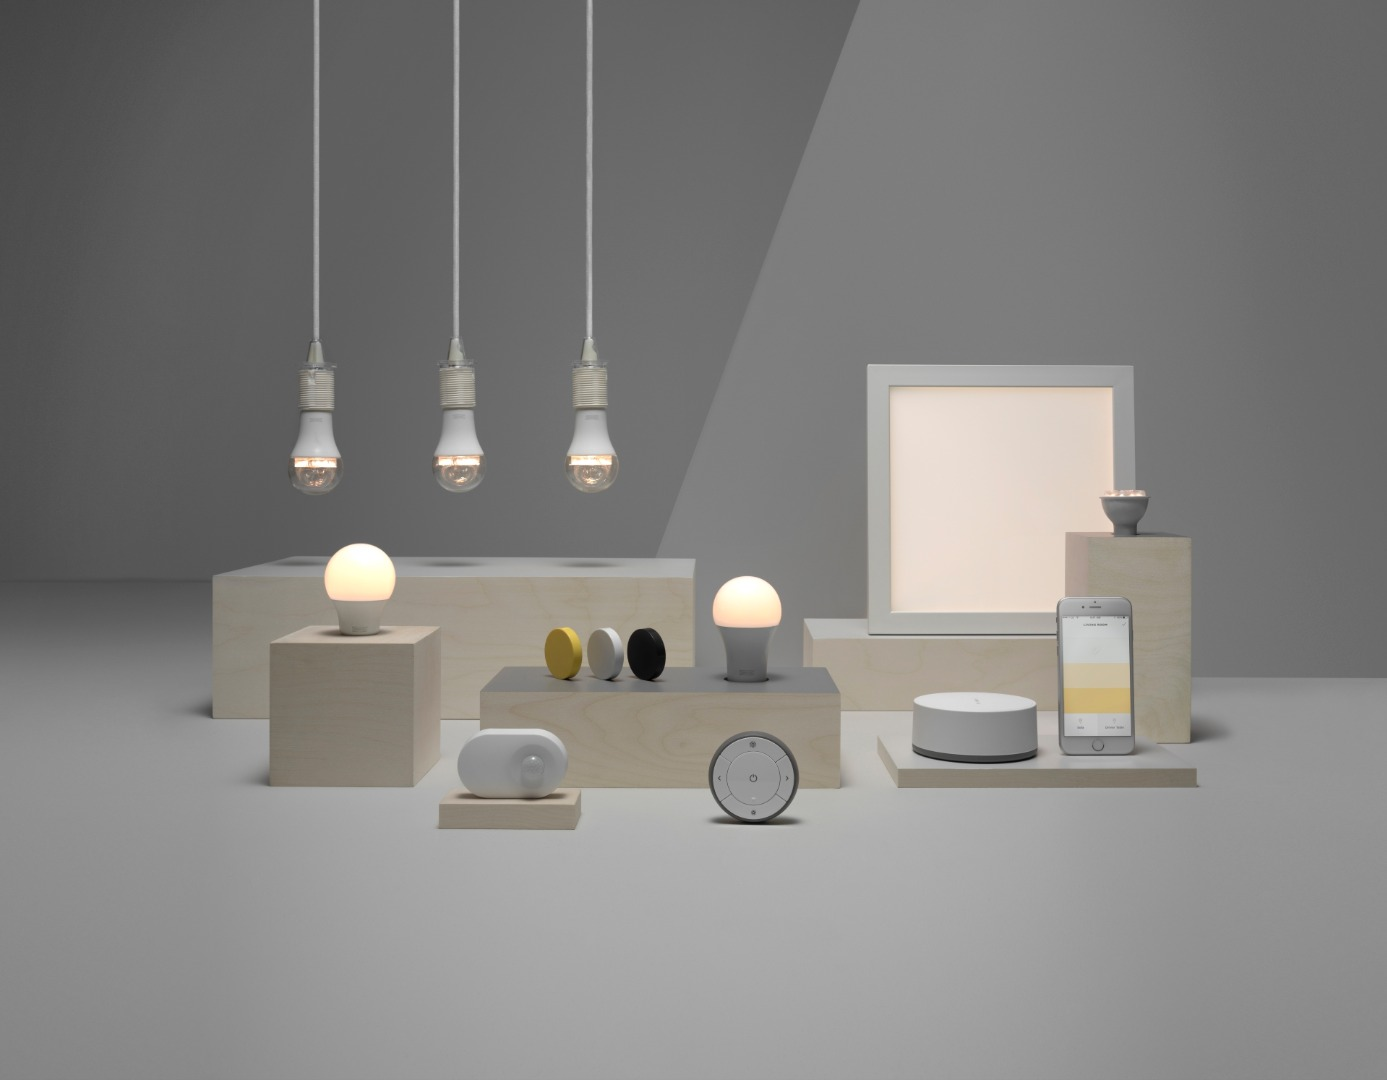 Ikea's smart lights get voice control from Siri, Alexa and